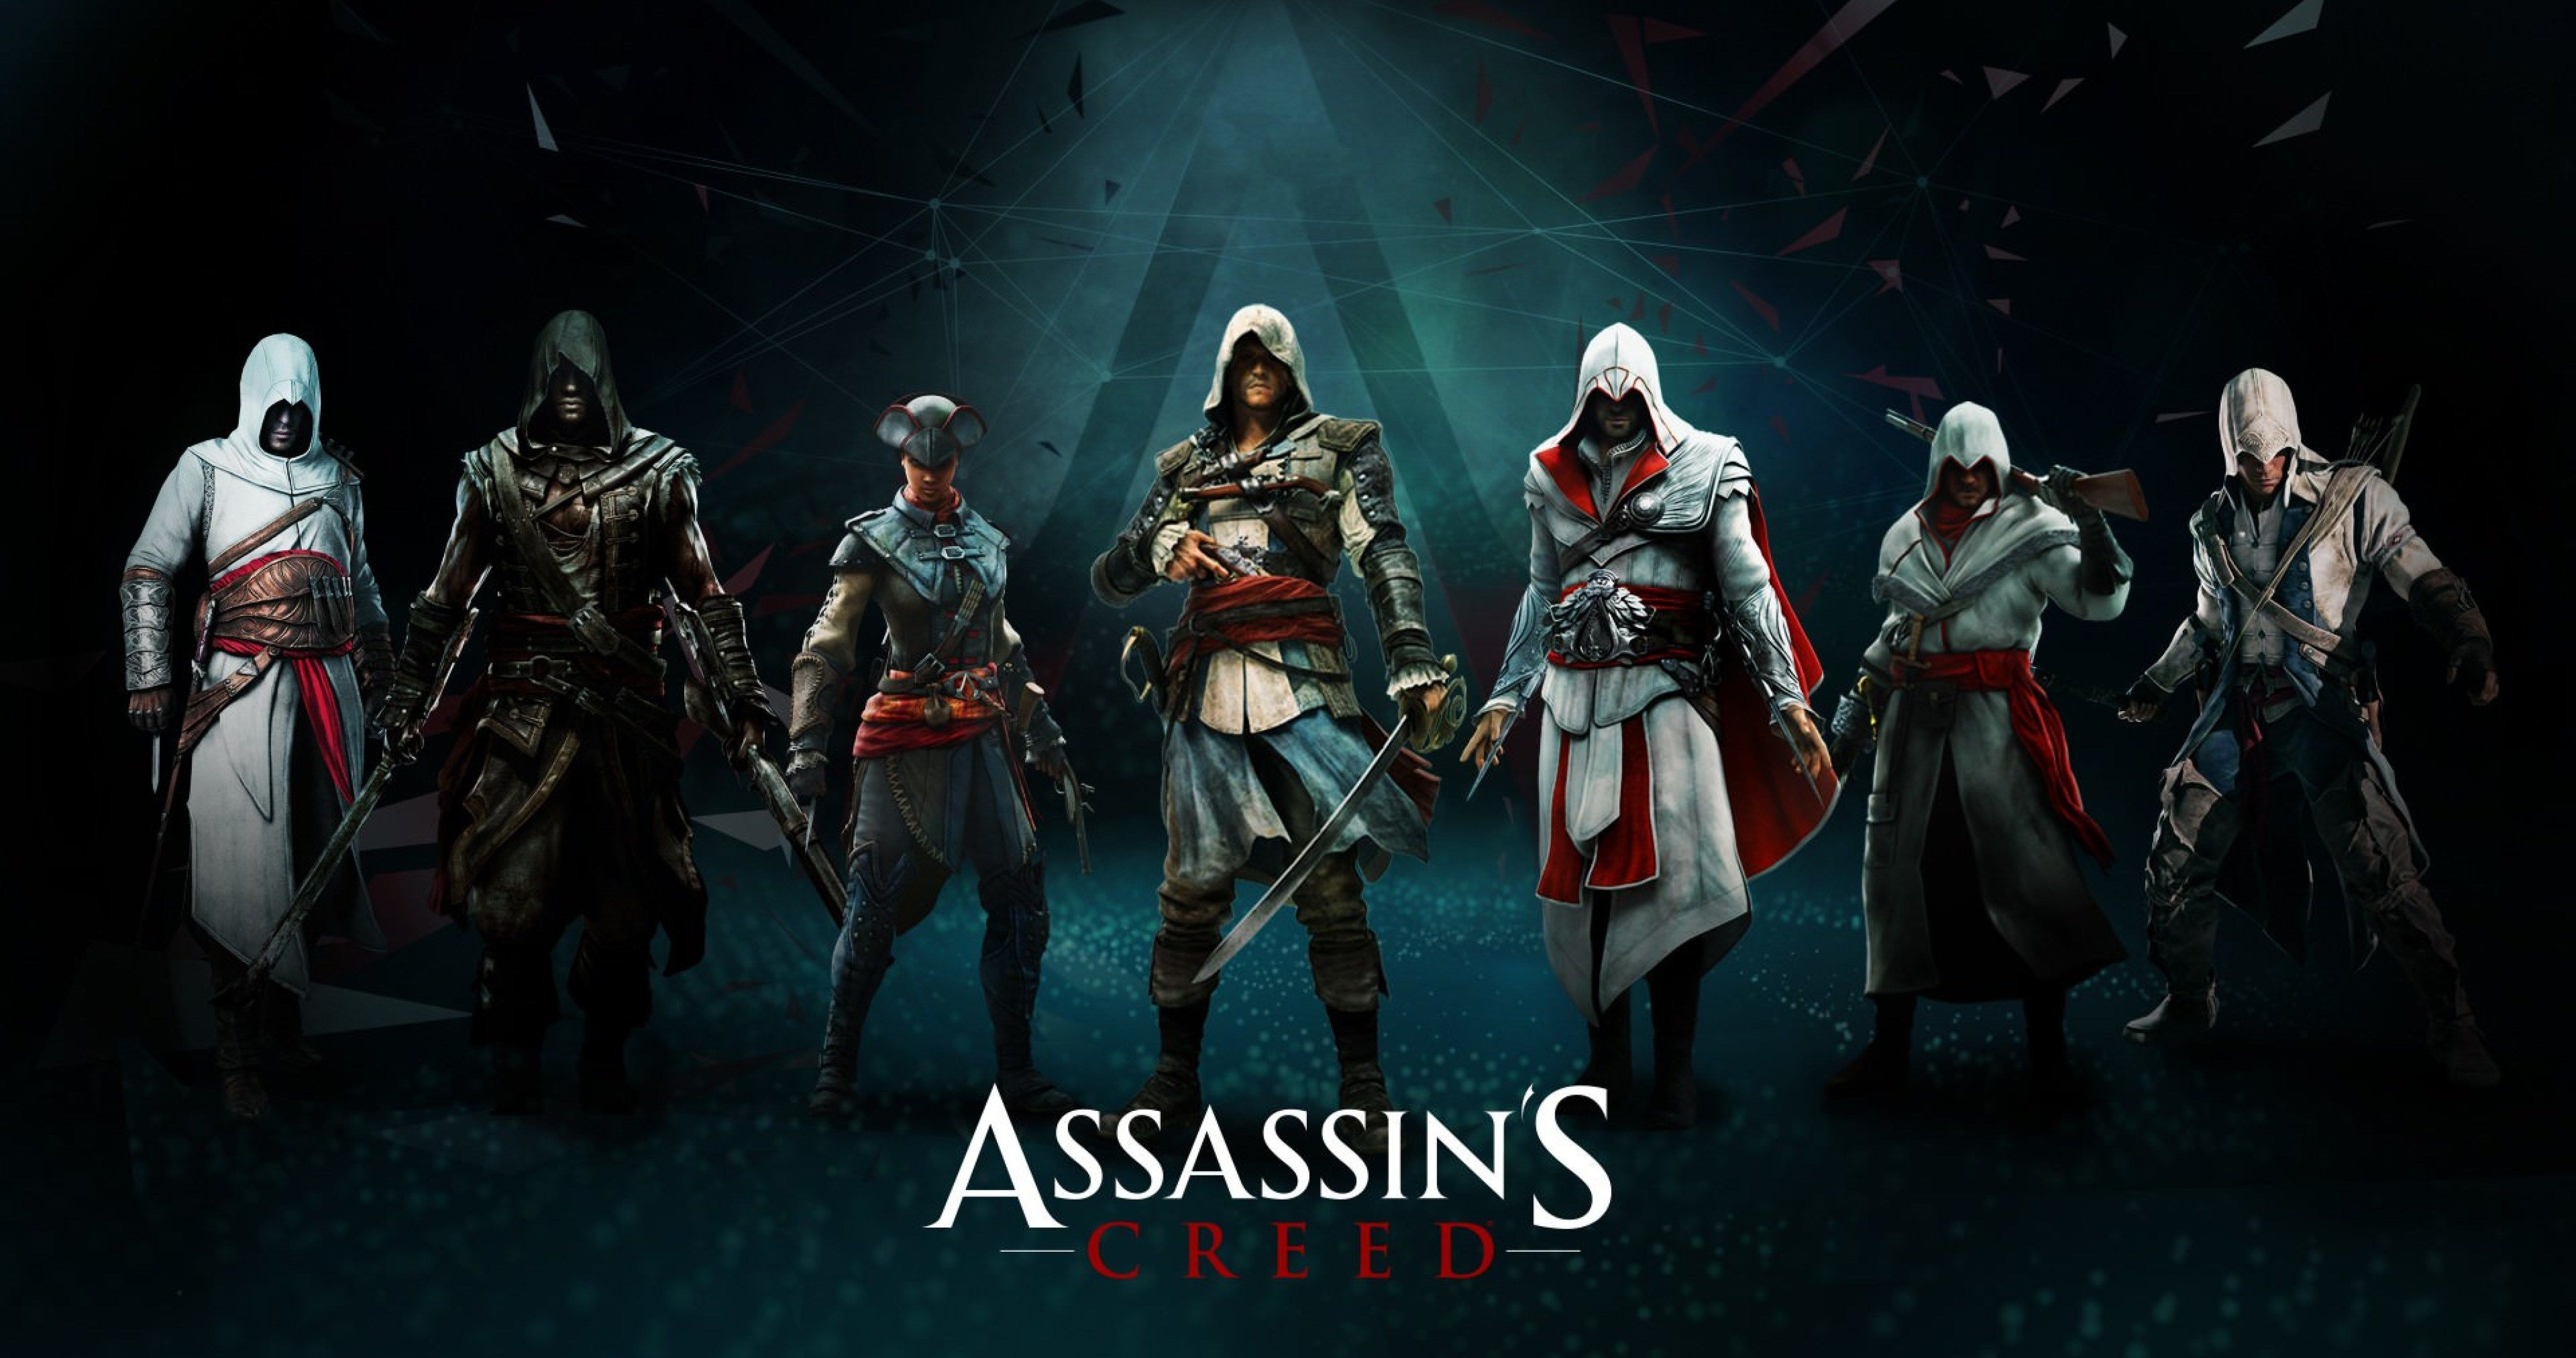 Assassin S Creed Laptop Wallpapers Top Free Assassin S Creed Laptop Backgrounds Wallpaperaccess